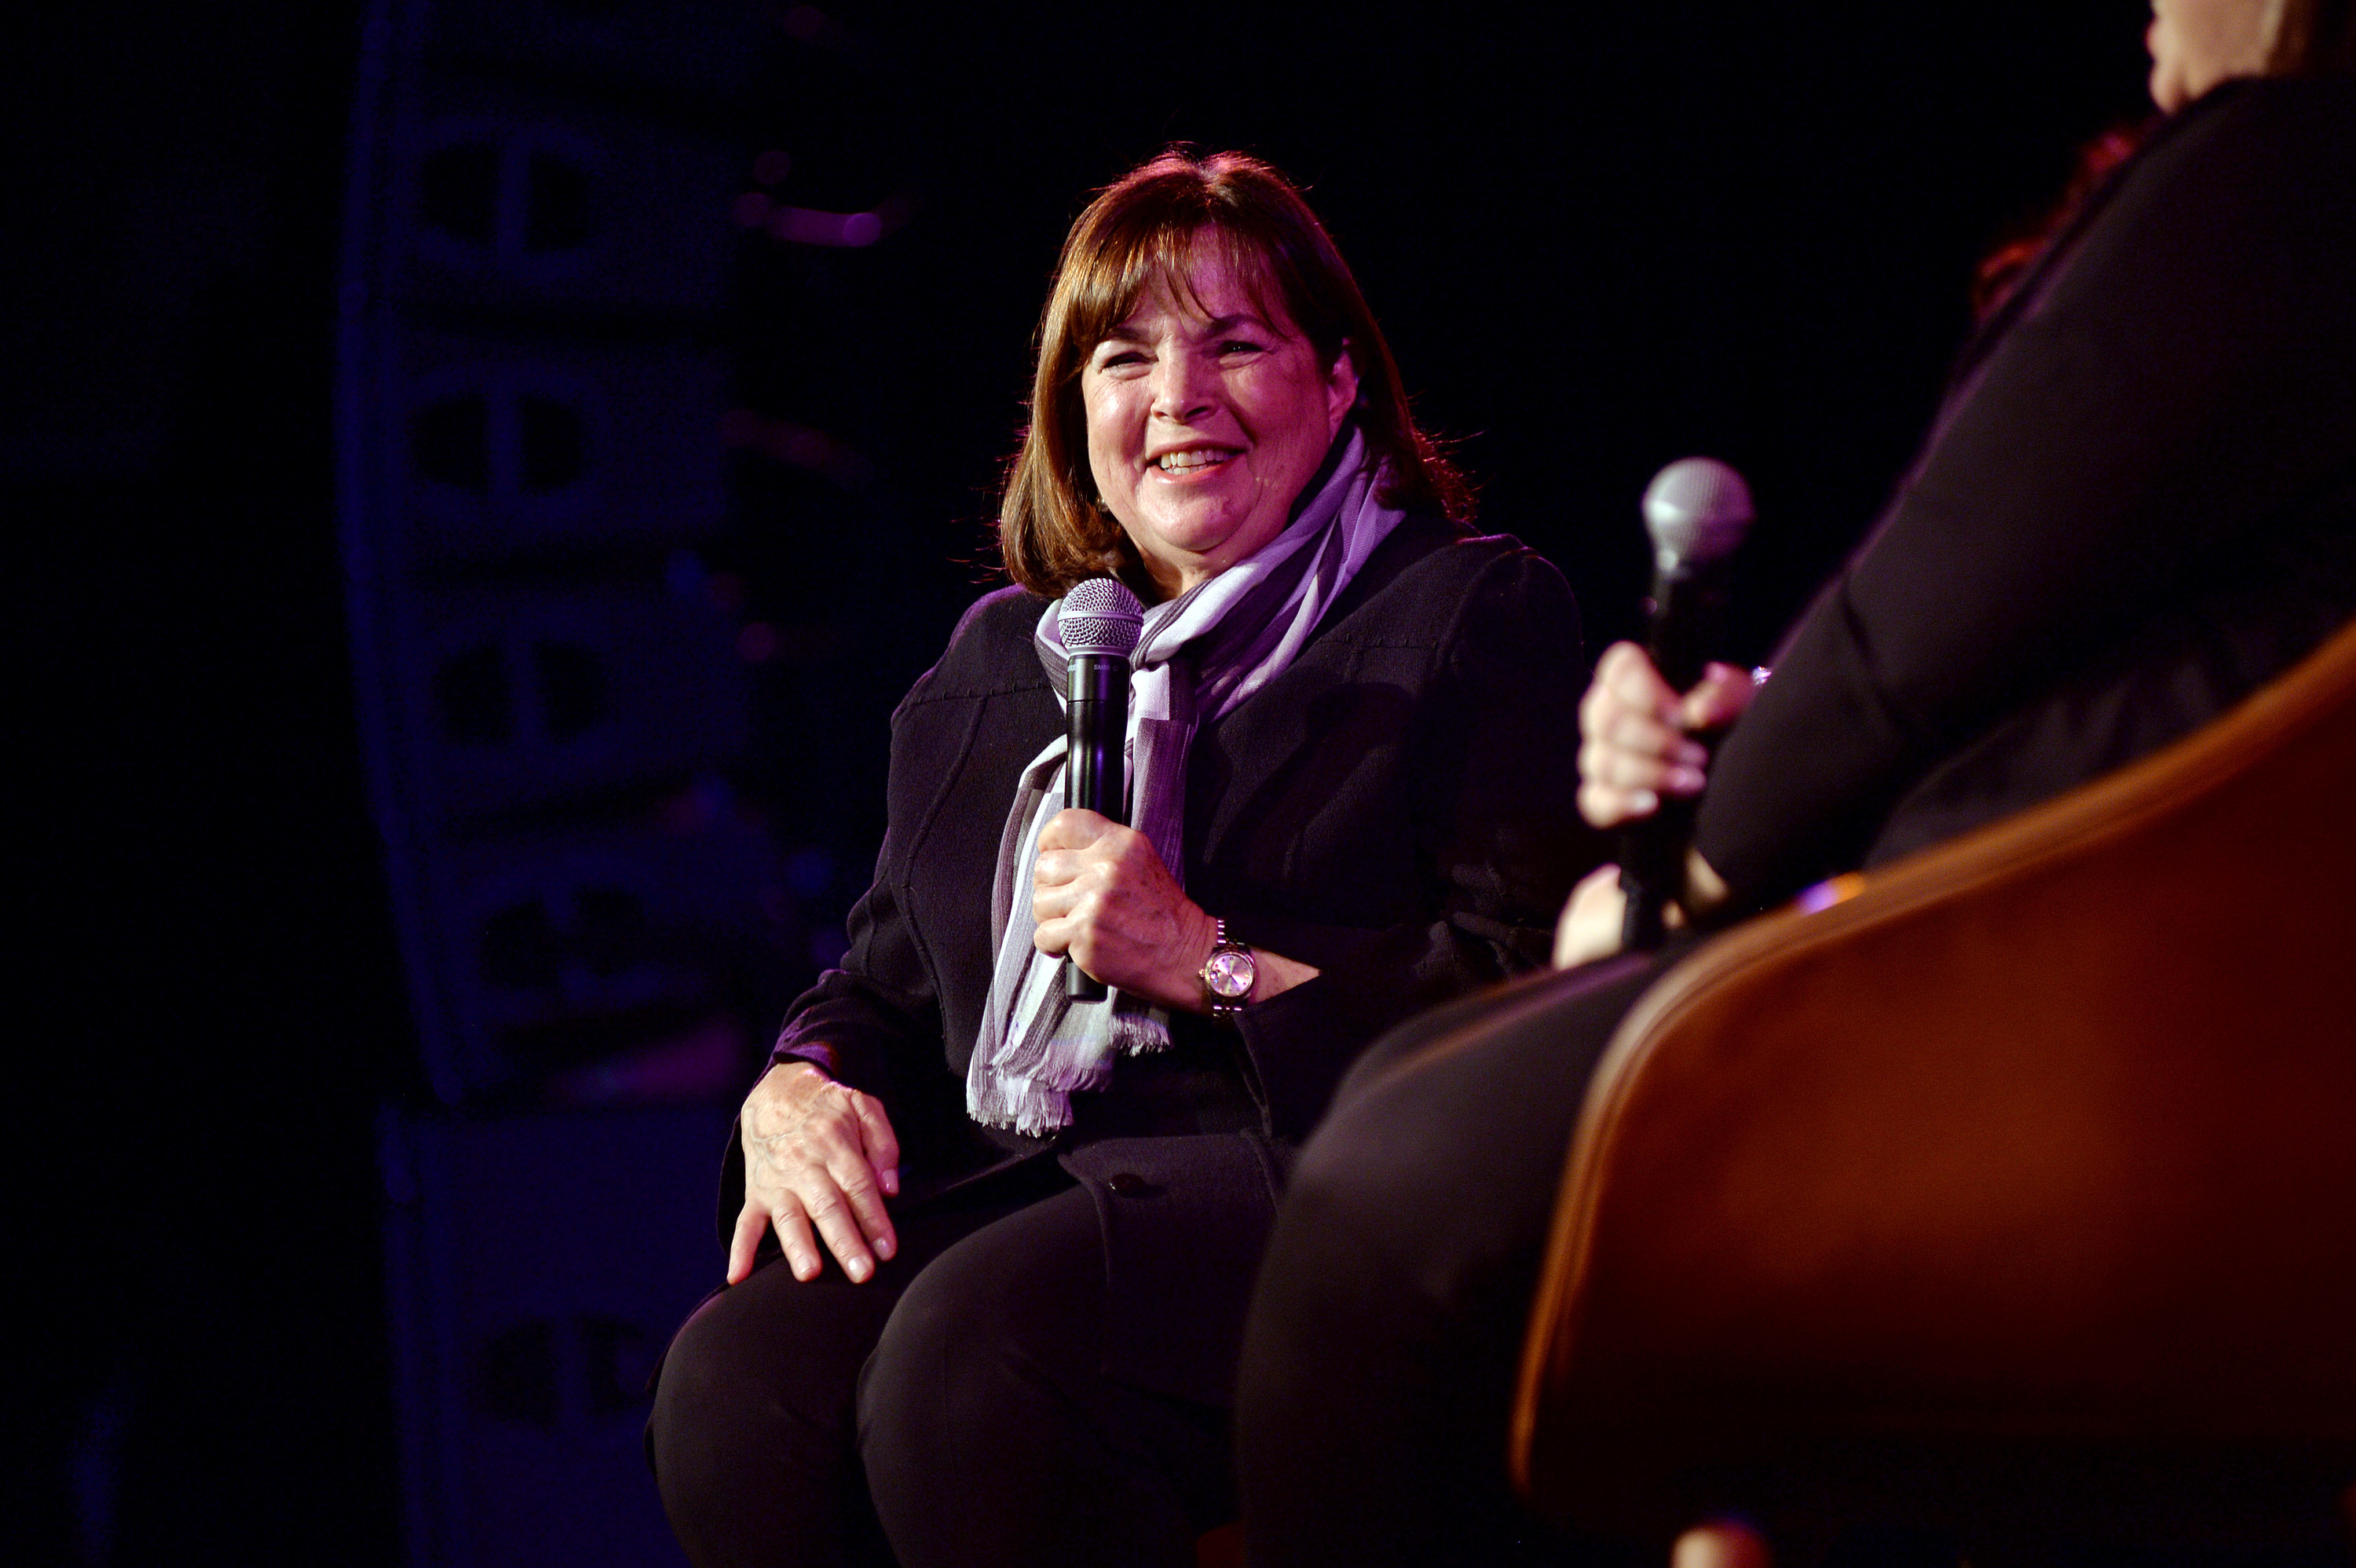 Ina Garten sitting in a chair onstage holding a microphone and doing an interview